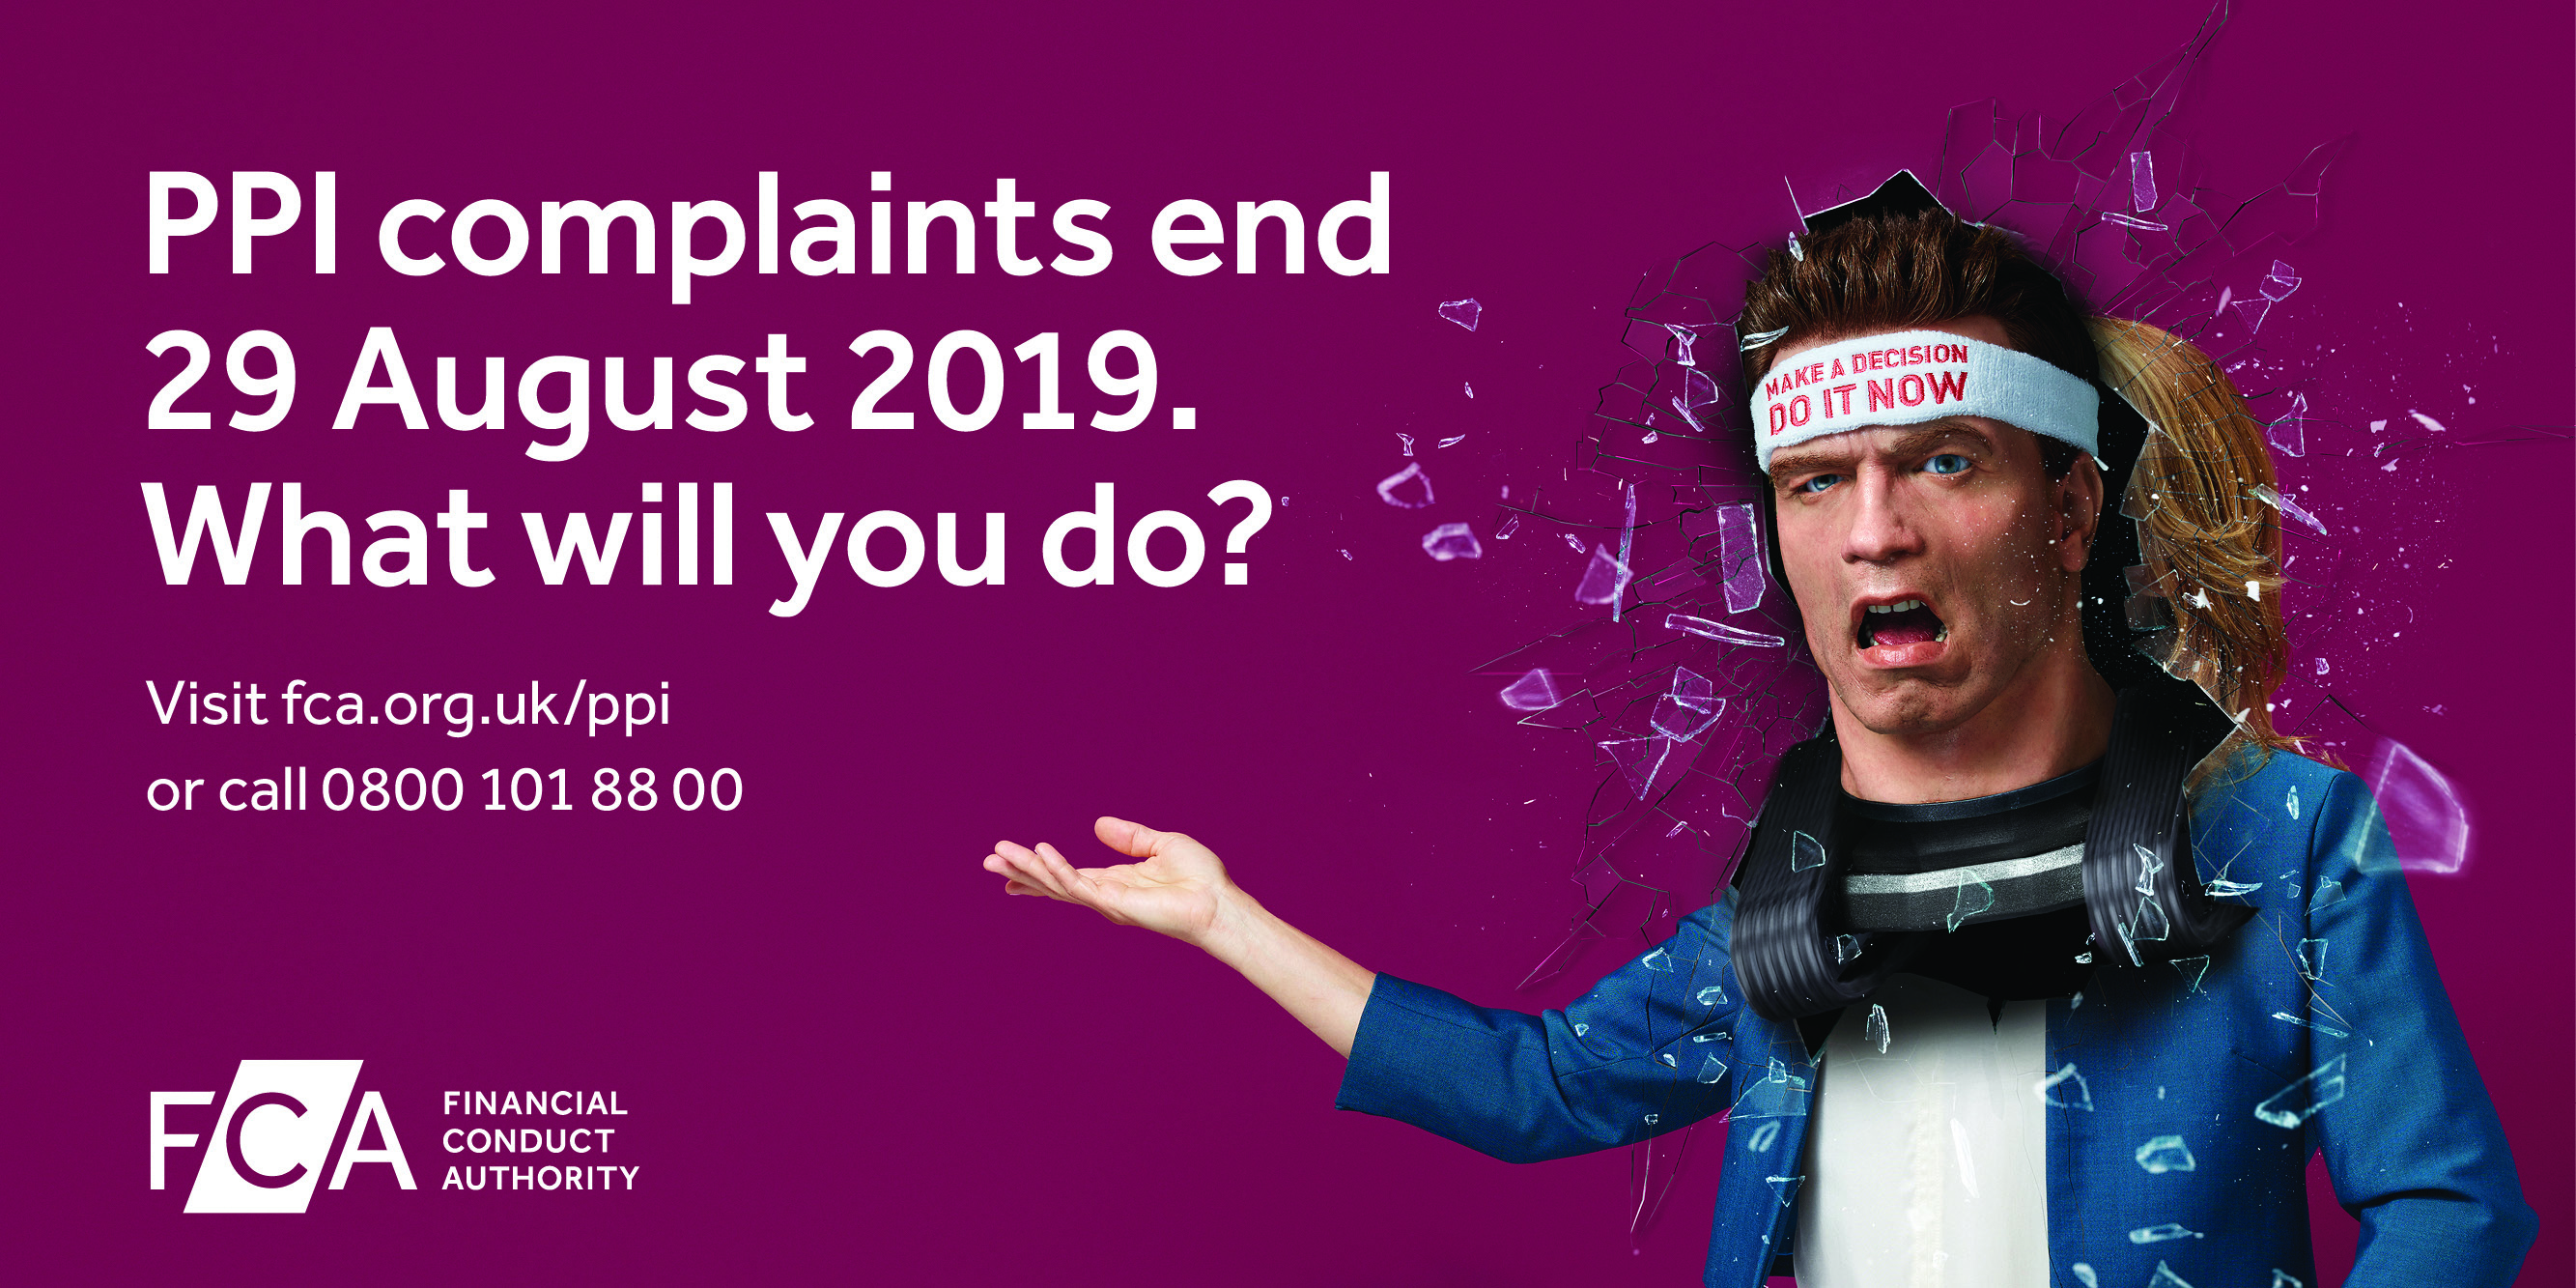 Fca starts countdown to ppi complaints deadline with advertising ppi campaign deadline poster landscape solutioingenieria Choice Image